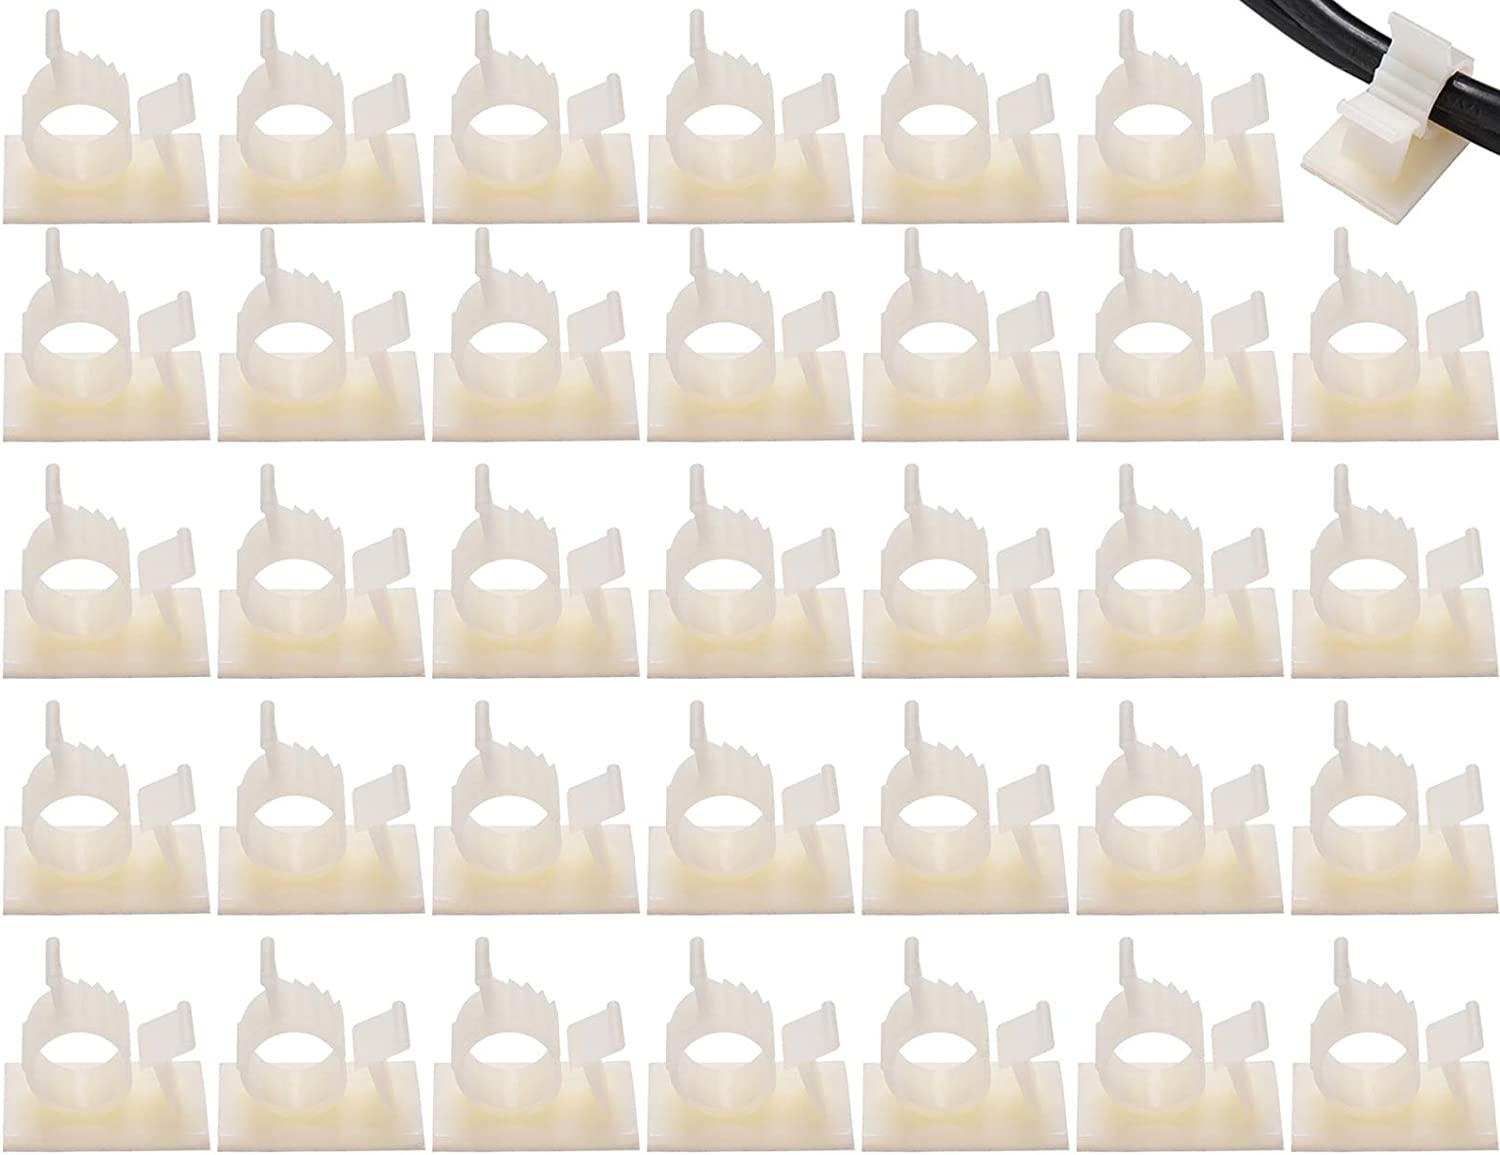 NICEKEY 35 PCS Adjustable Cable Clips With Strong Adhesive Nylon Cable Clamps Management Drop Wire Holder for Car, Home and Office (35 PCS, White)